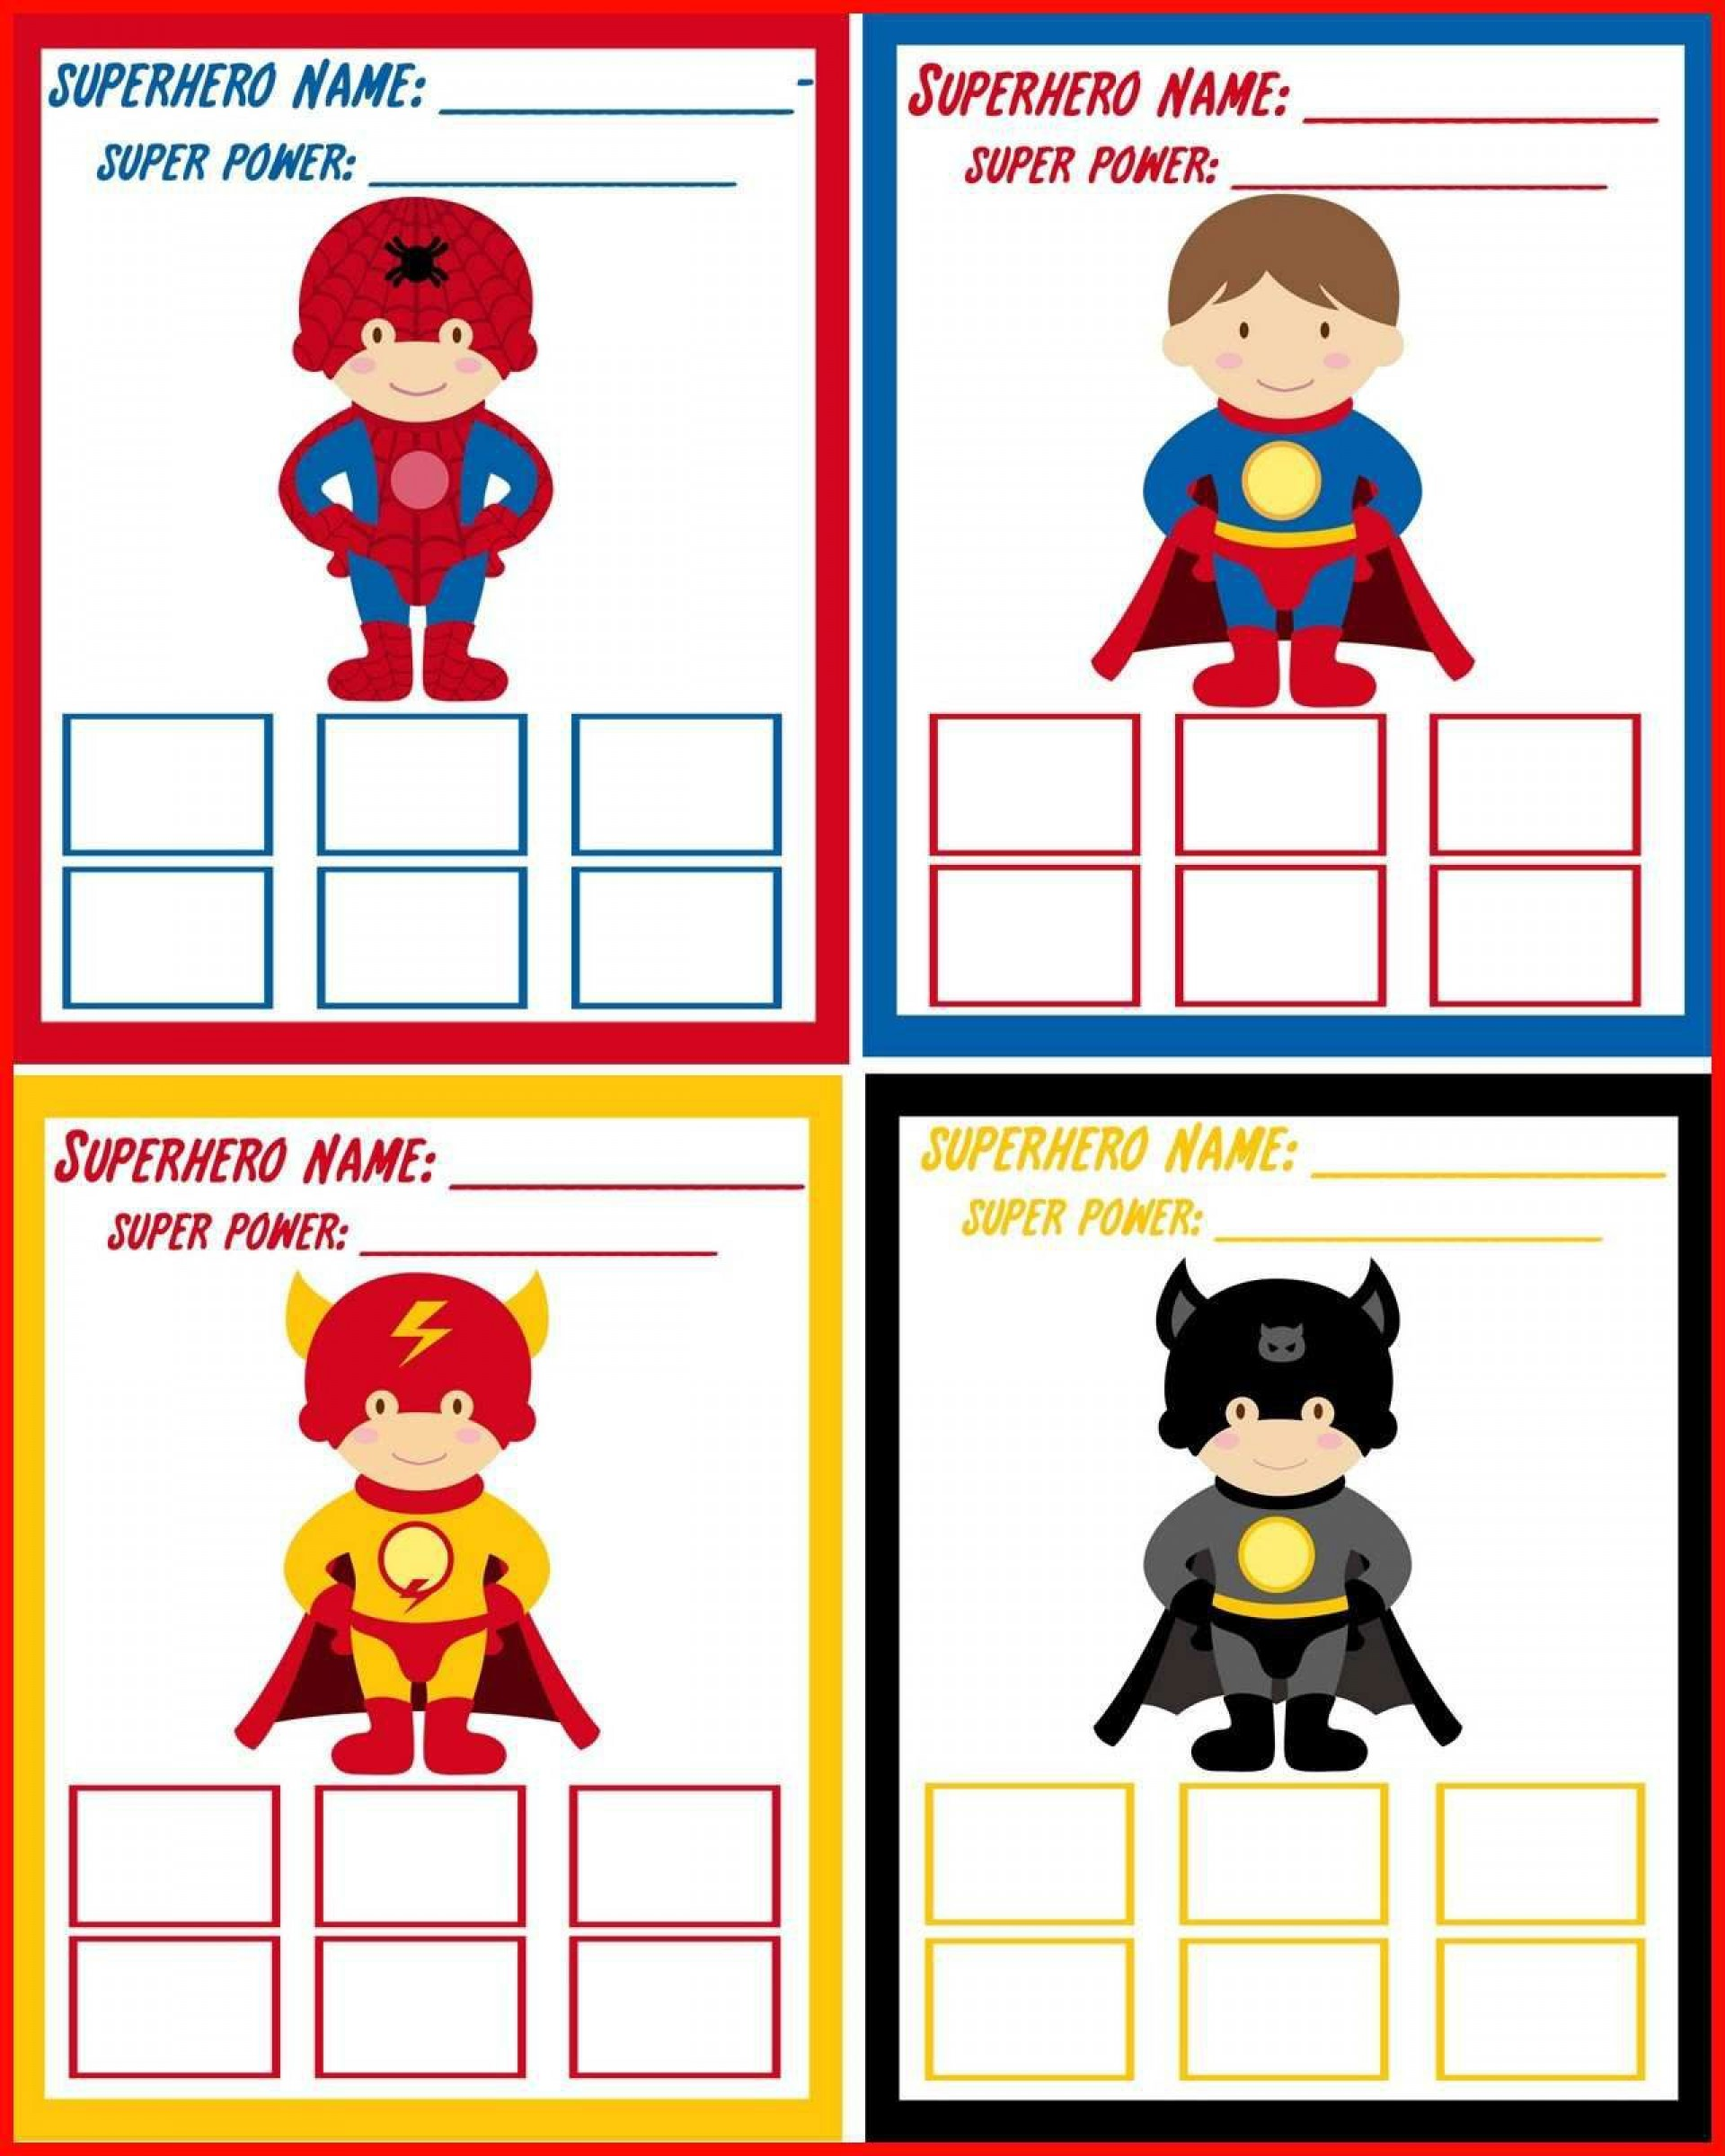 000 Phenomenal Superhero Invitation Template Free High Def  Newspaper Party Birthday Invite1920